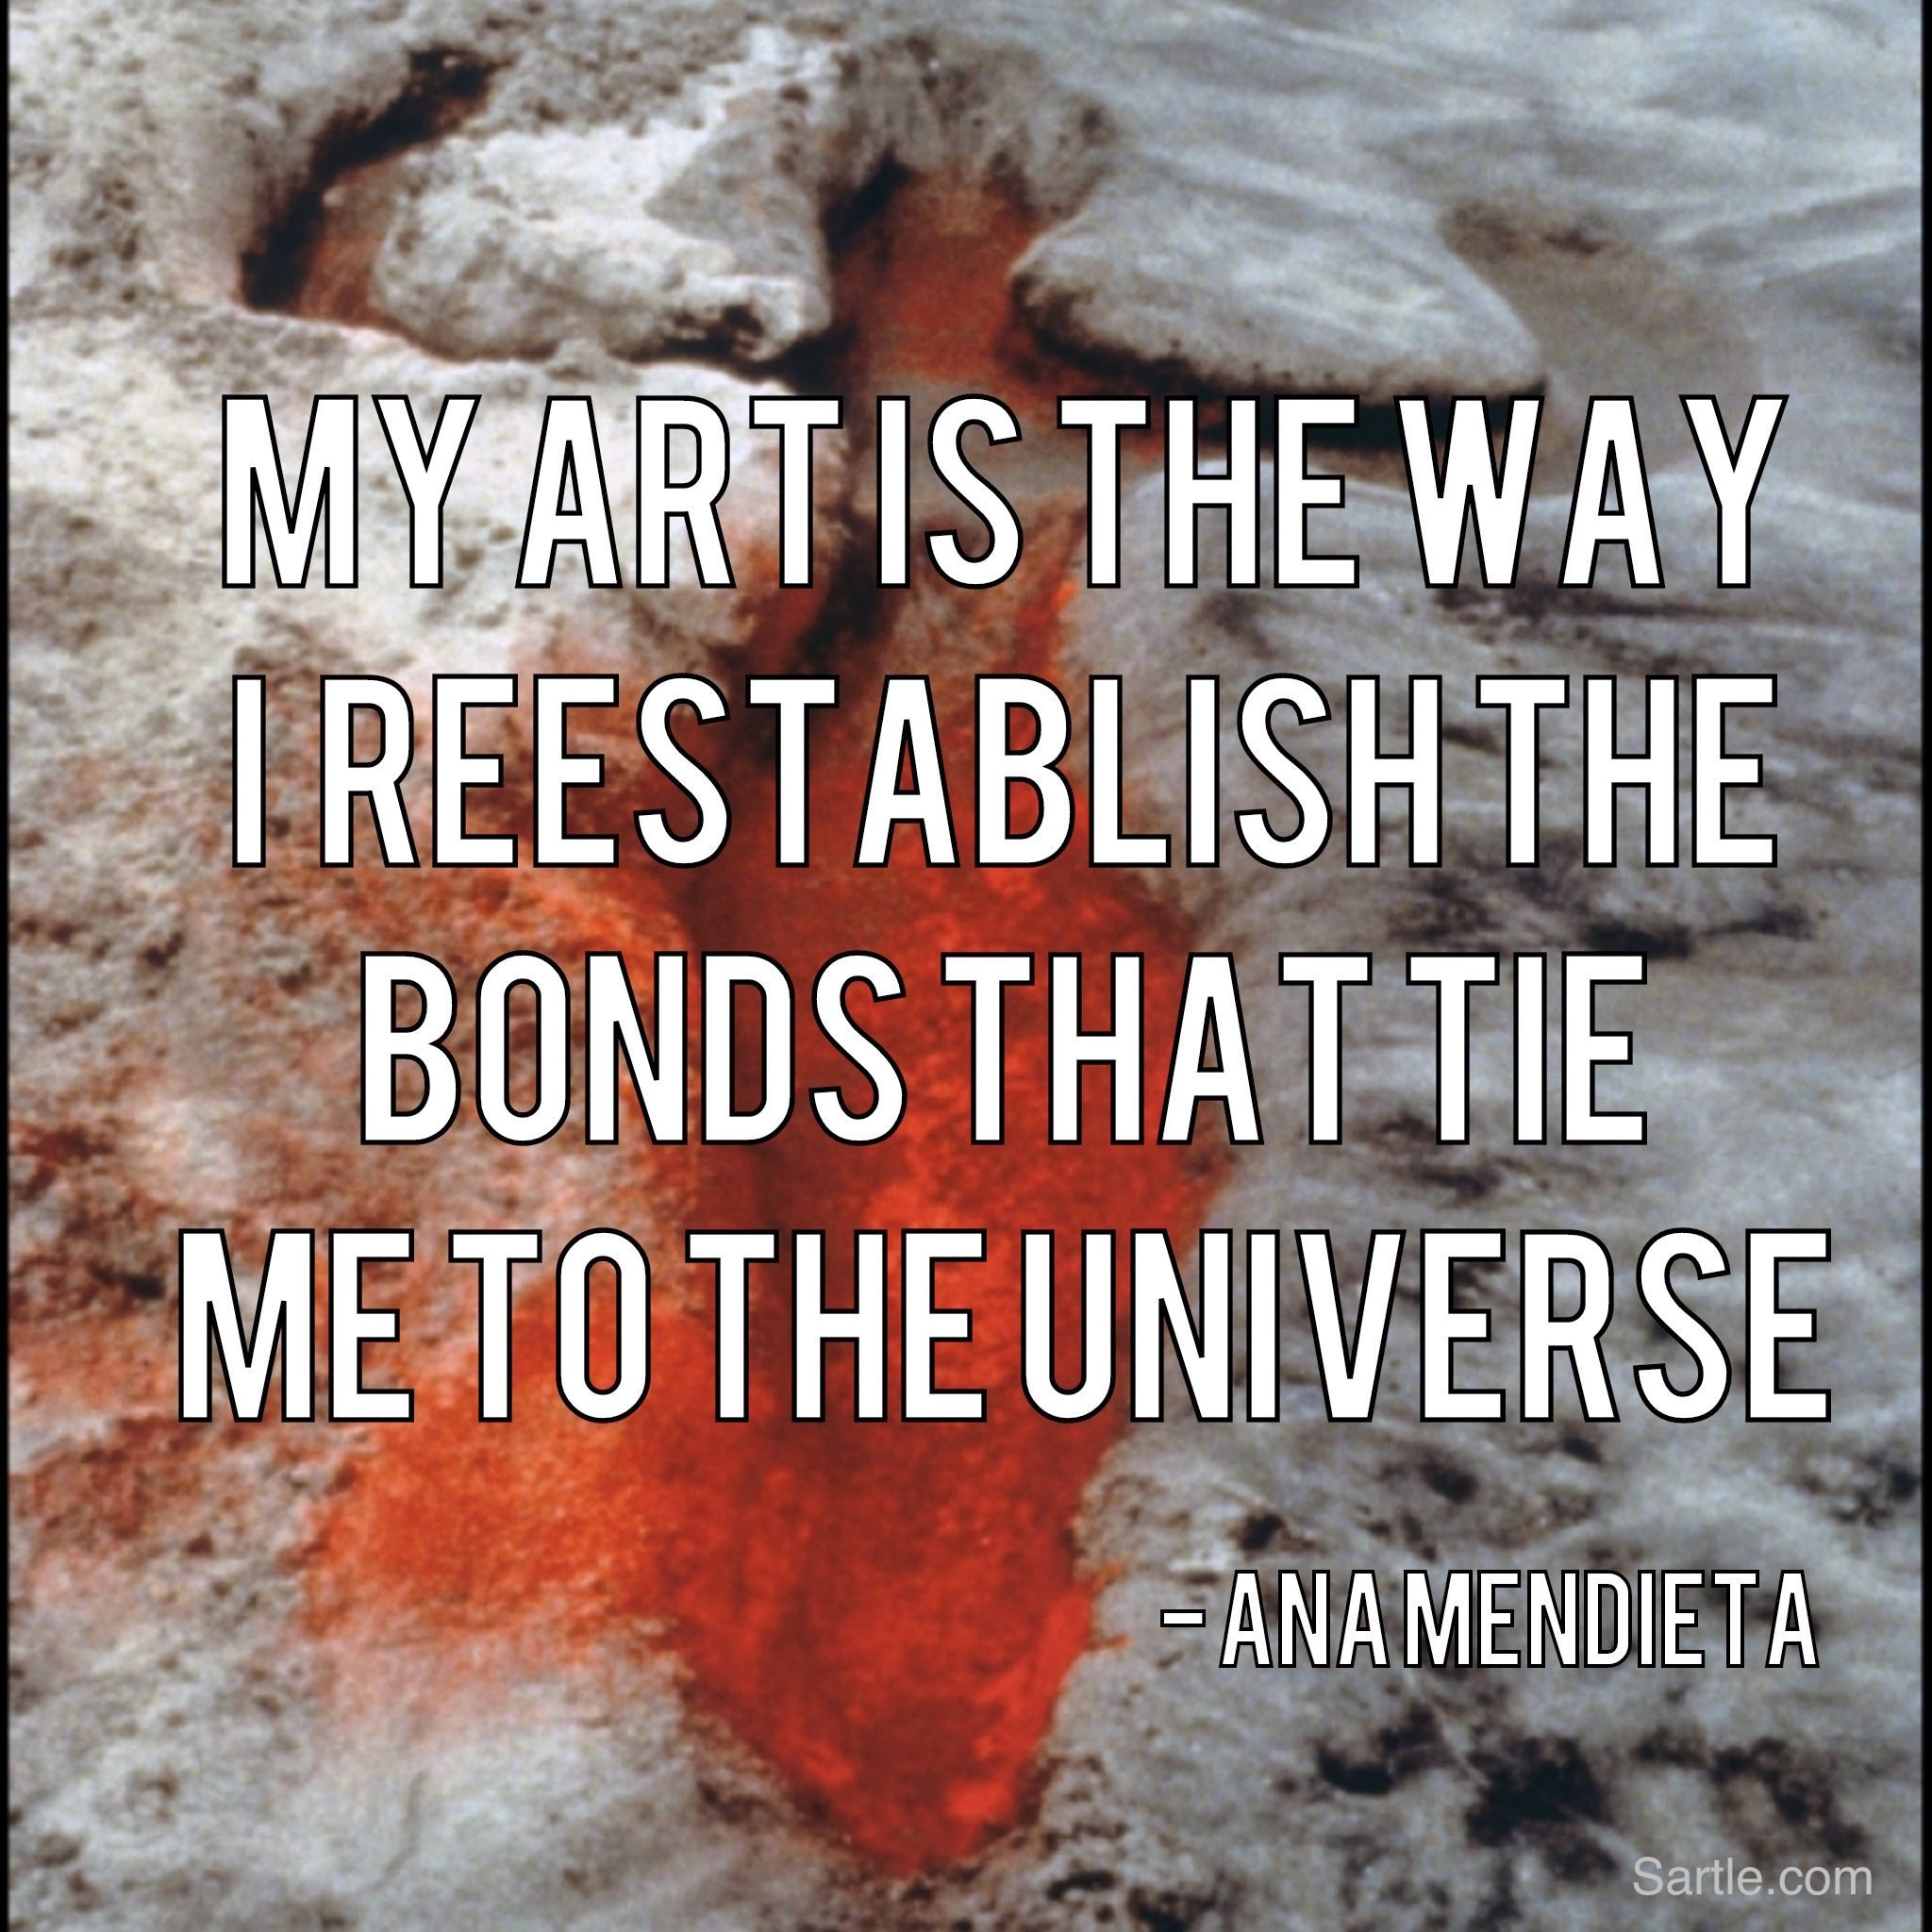 My Art is the Way I Reestablish the Bonds that Tie Me to the Universe - Ana Mendieta. Quote